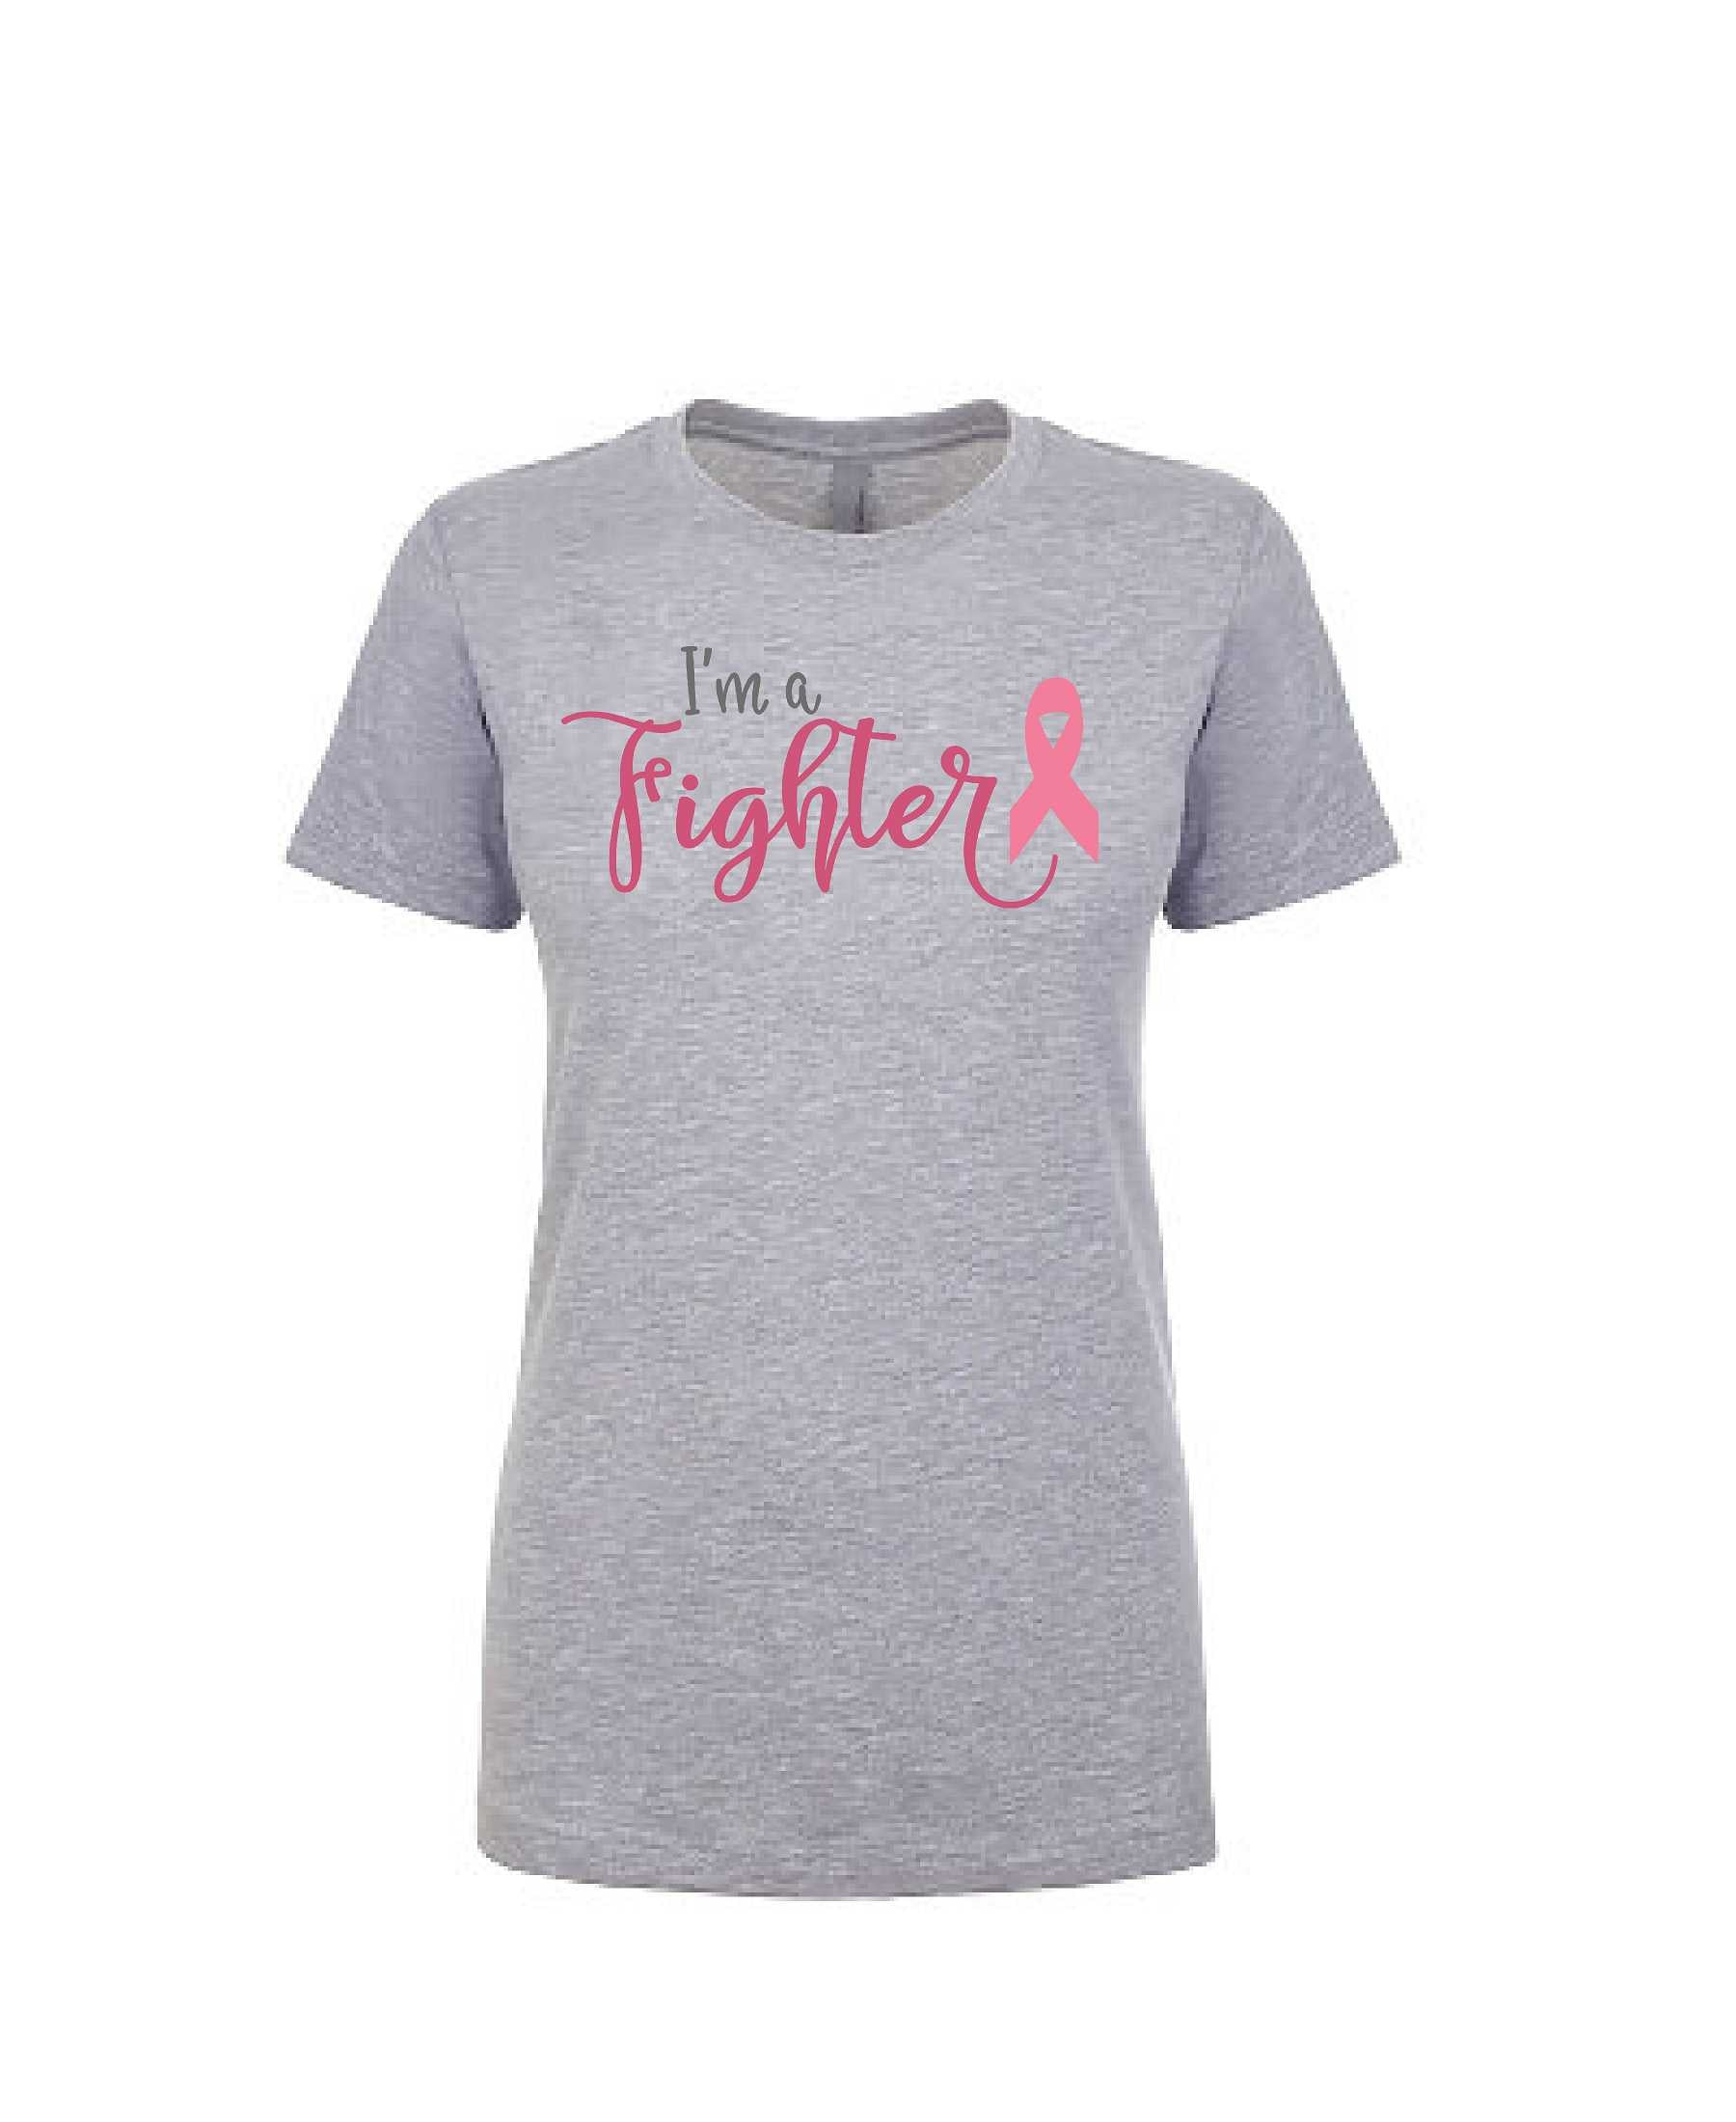 I'm A Fighter - Women's Boyfriend Tee